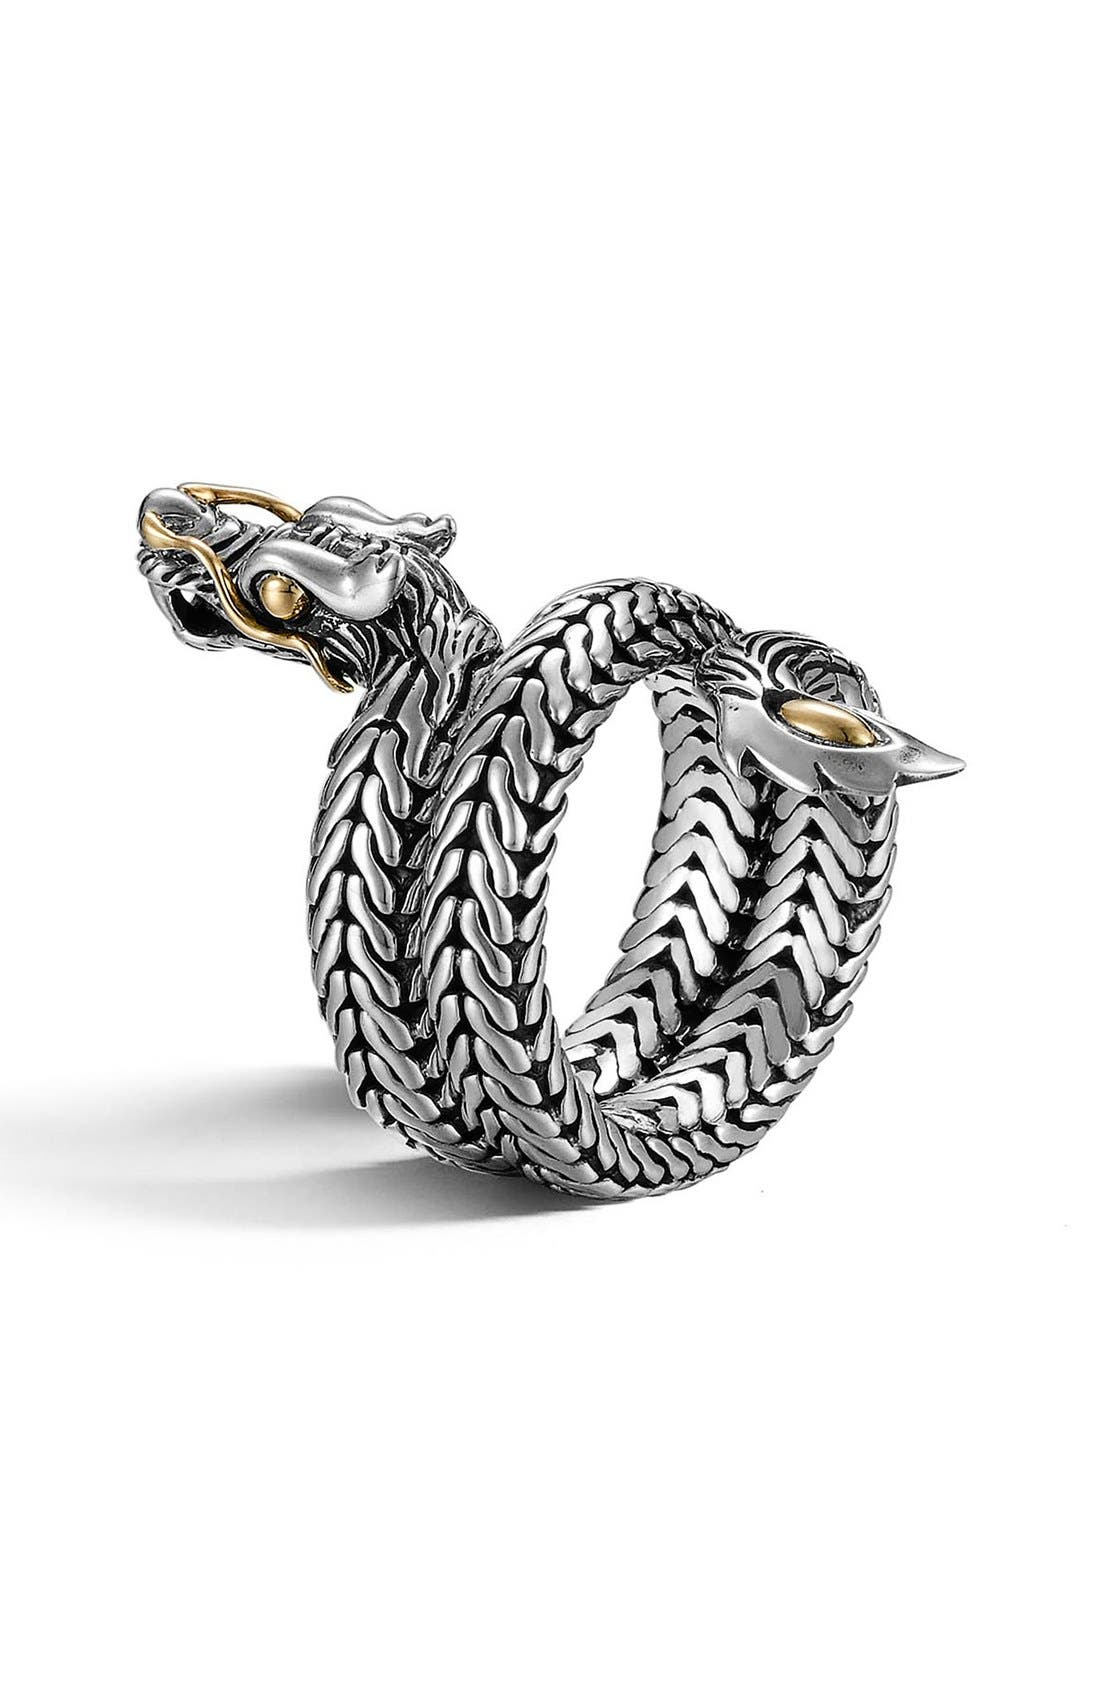 Main Image - John Hardy 'Legends' Coil Ring